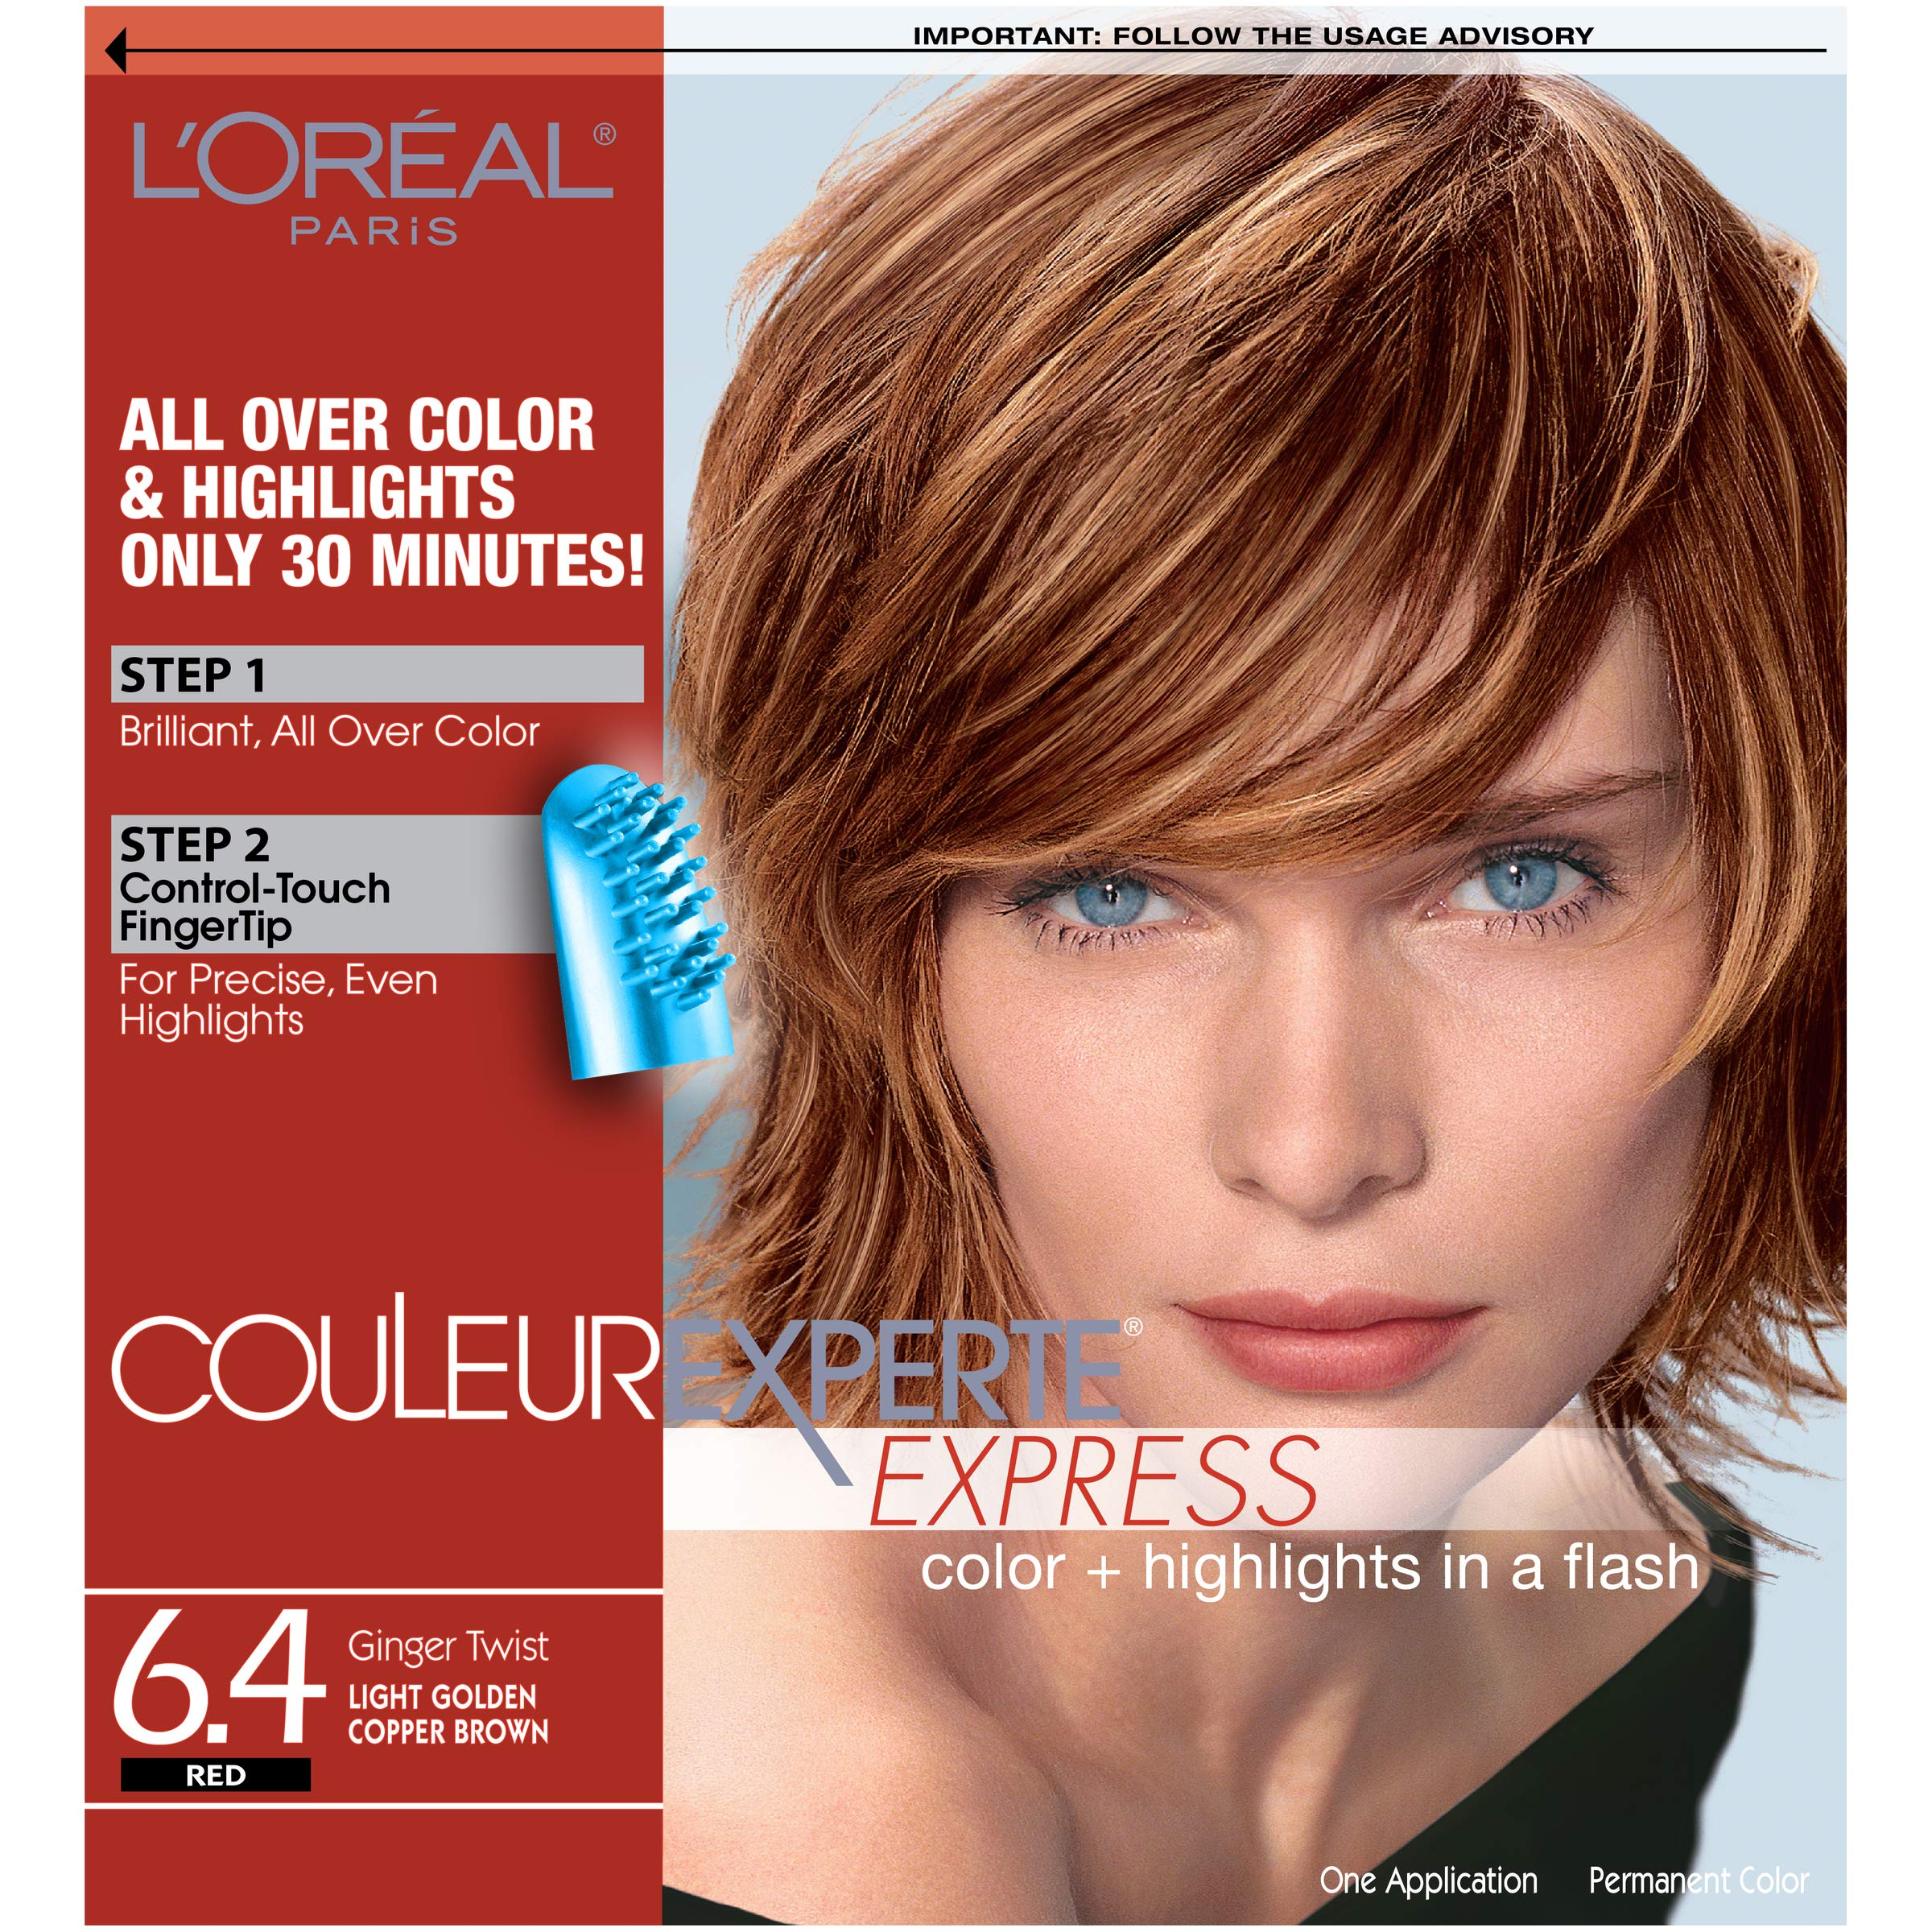 L'Oréal Paris Couleur Experte 2-Step Home Hair Color & Highlights Kit, Ginger Twist by L'Oreal Paris